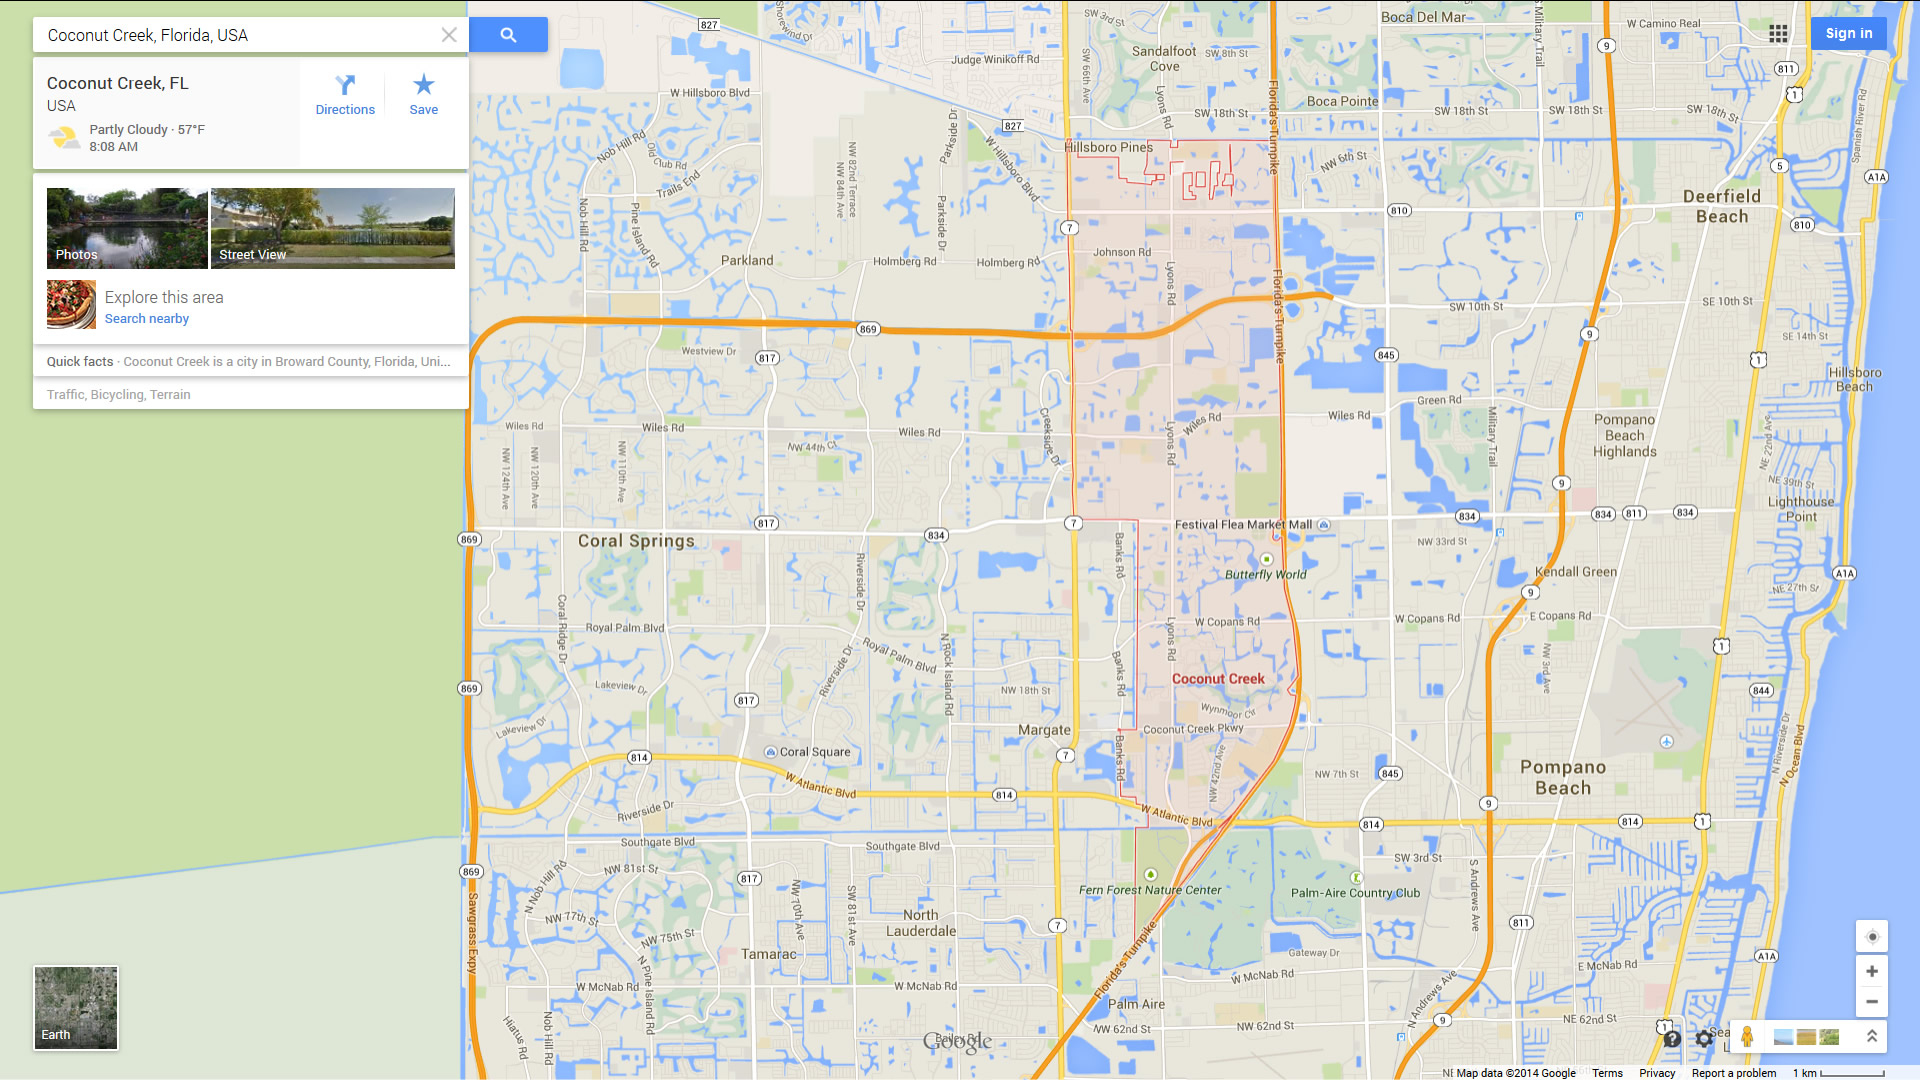 Coconut Creek Florida Map - Coconut Creek Florida Map